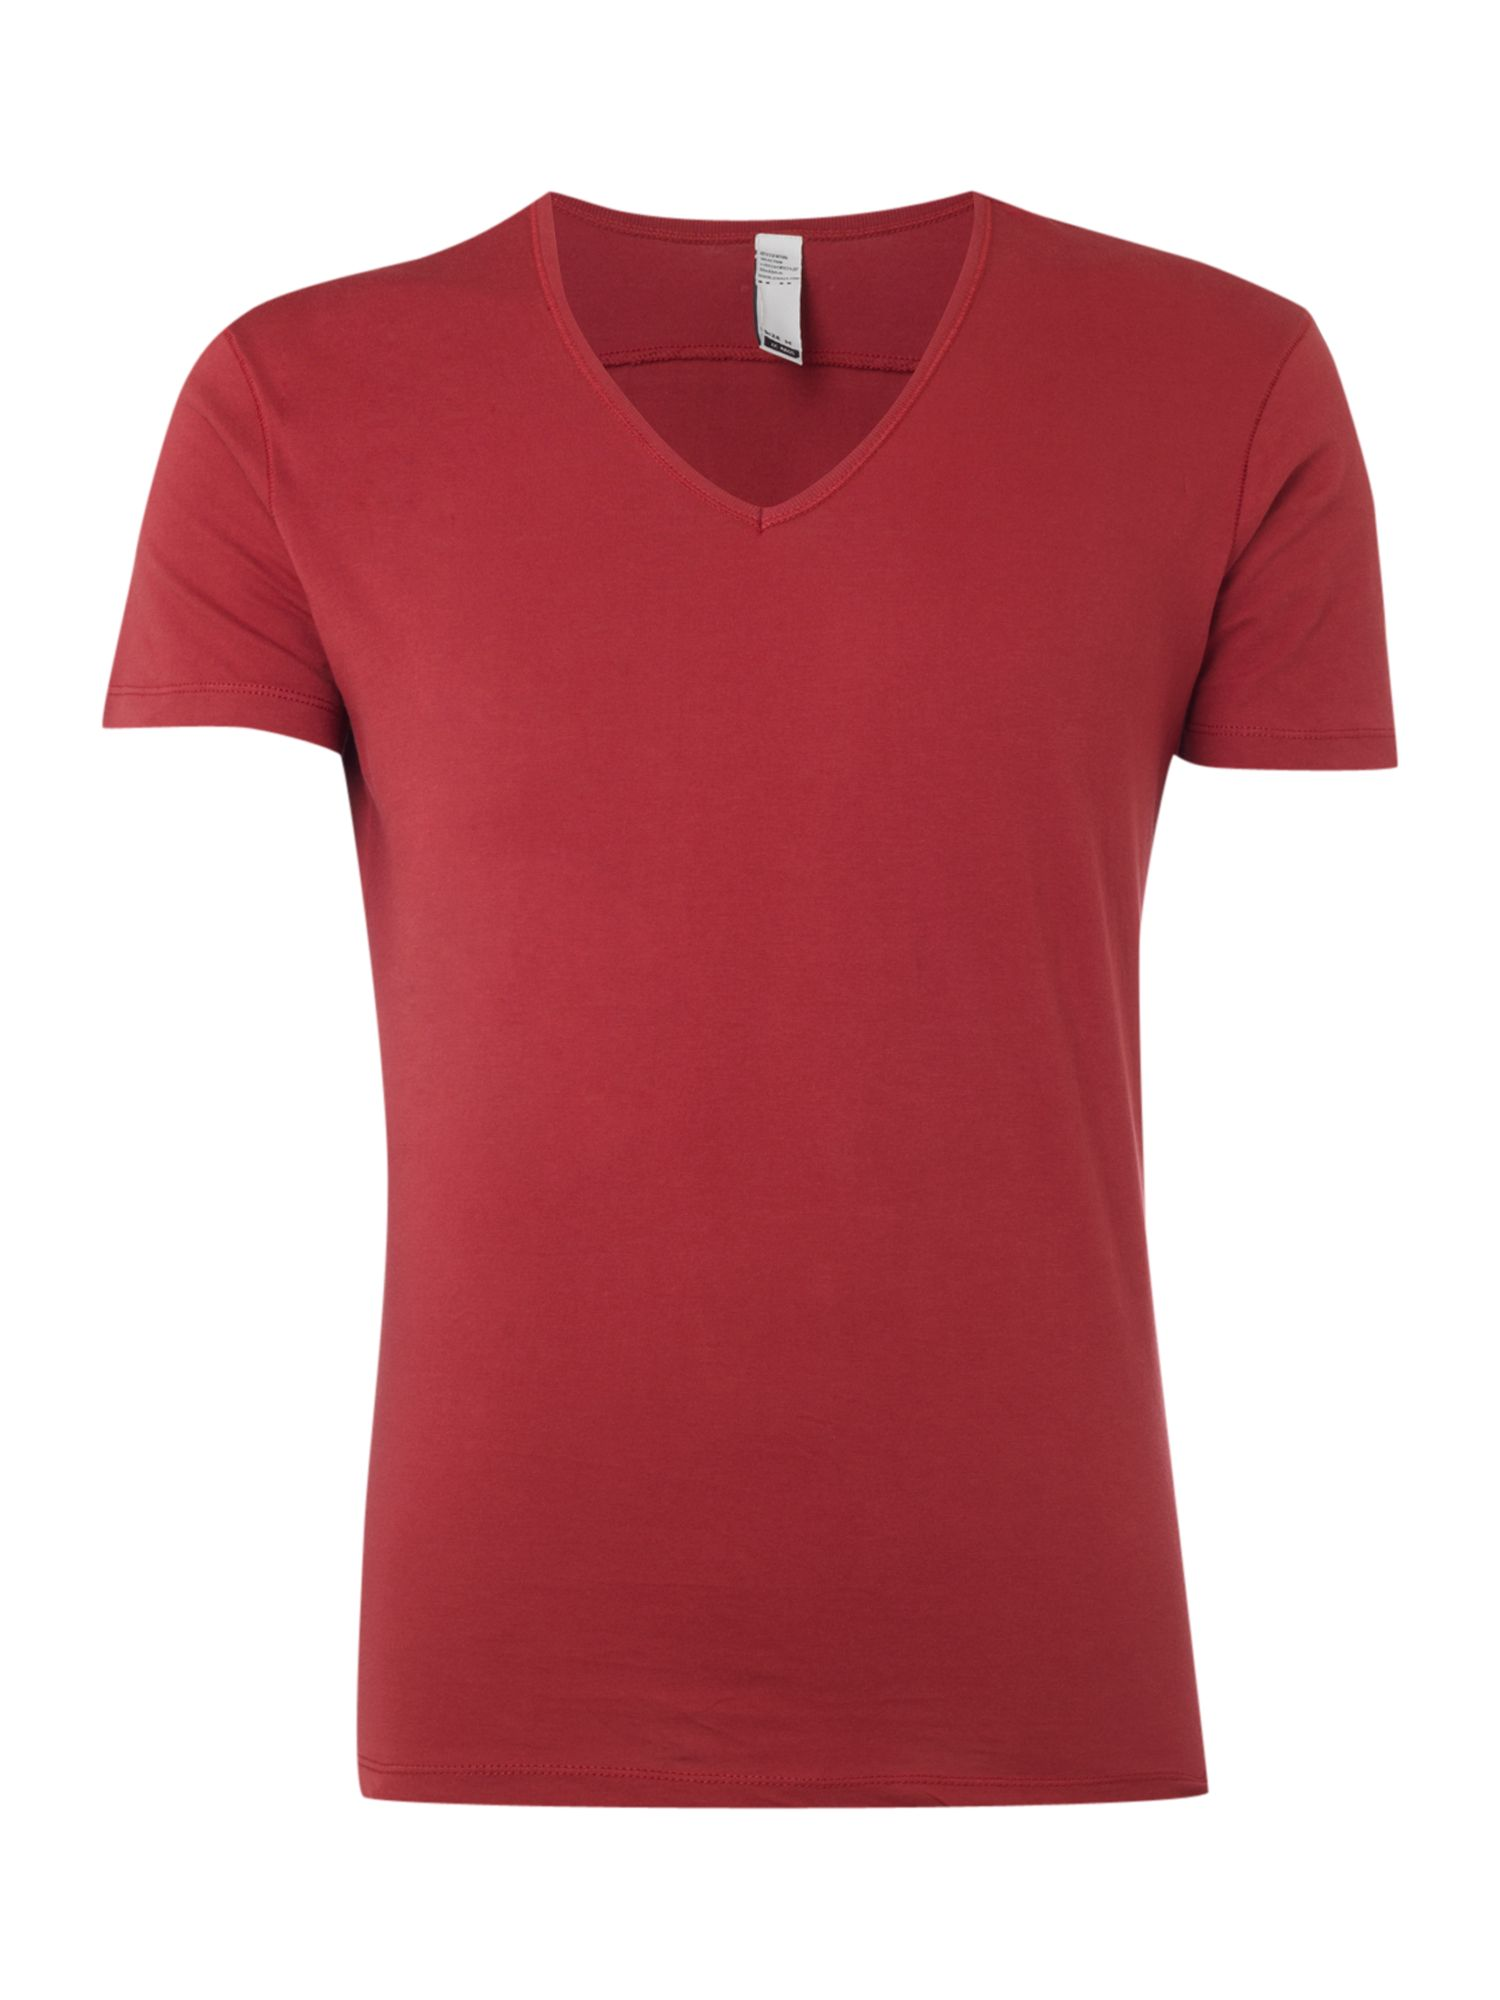 JC Rags Mens JC Rags Deep V-neck T-shirt, Burgundy product image